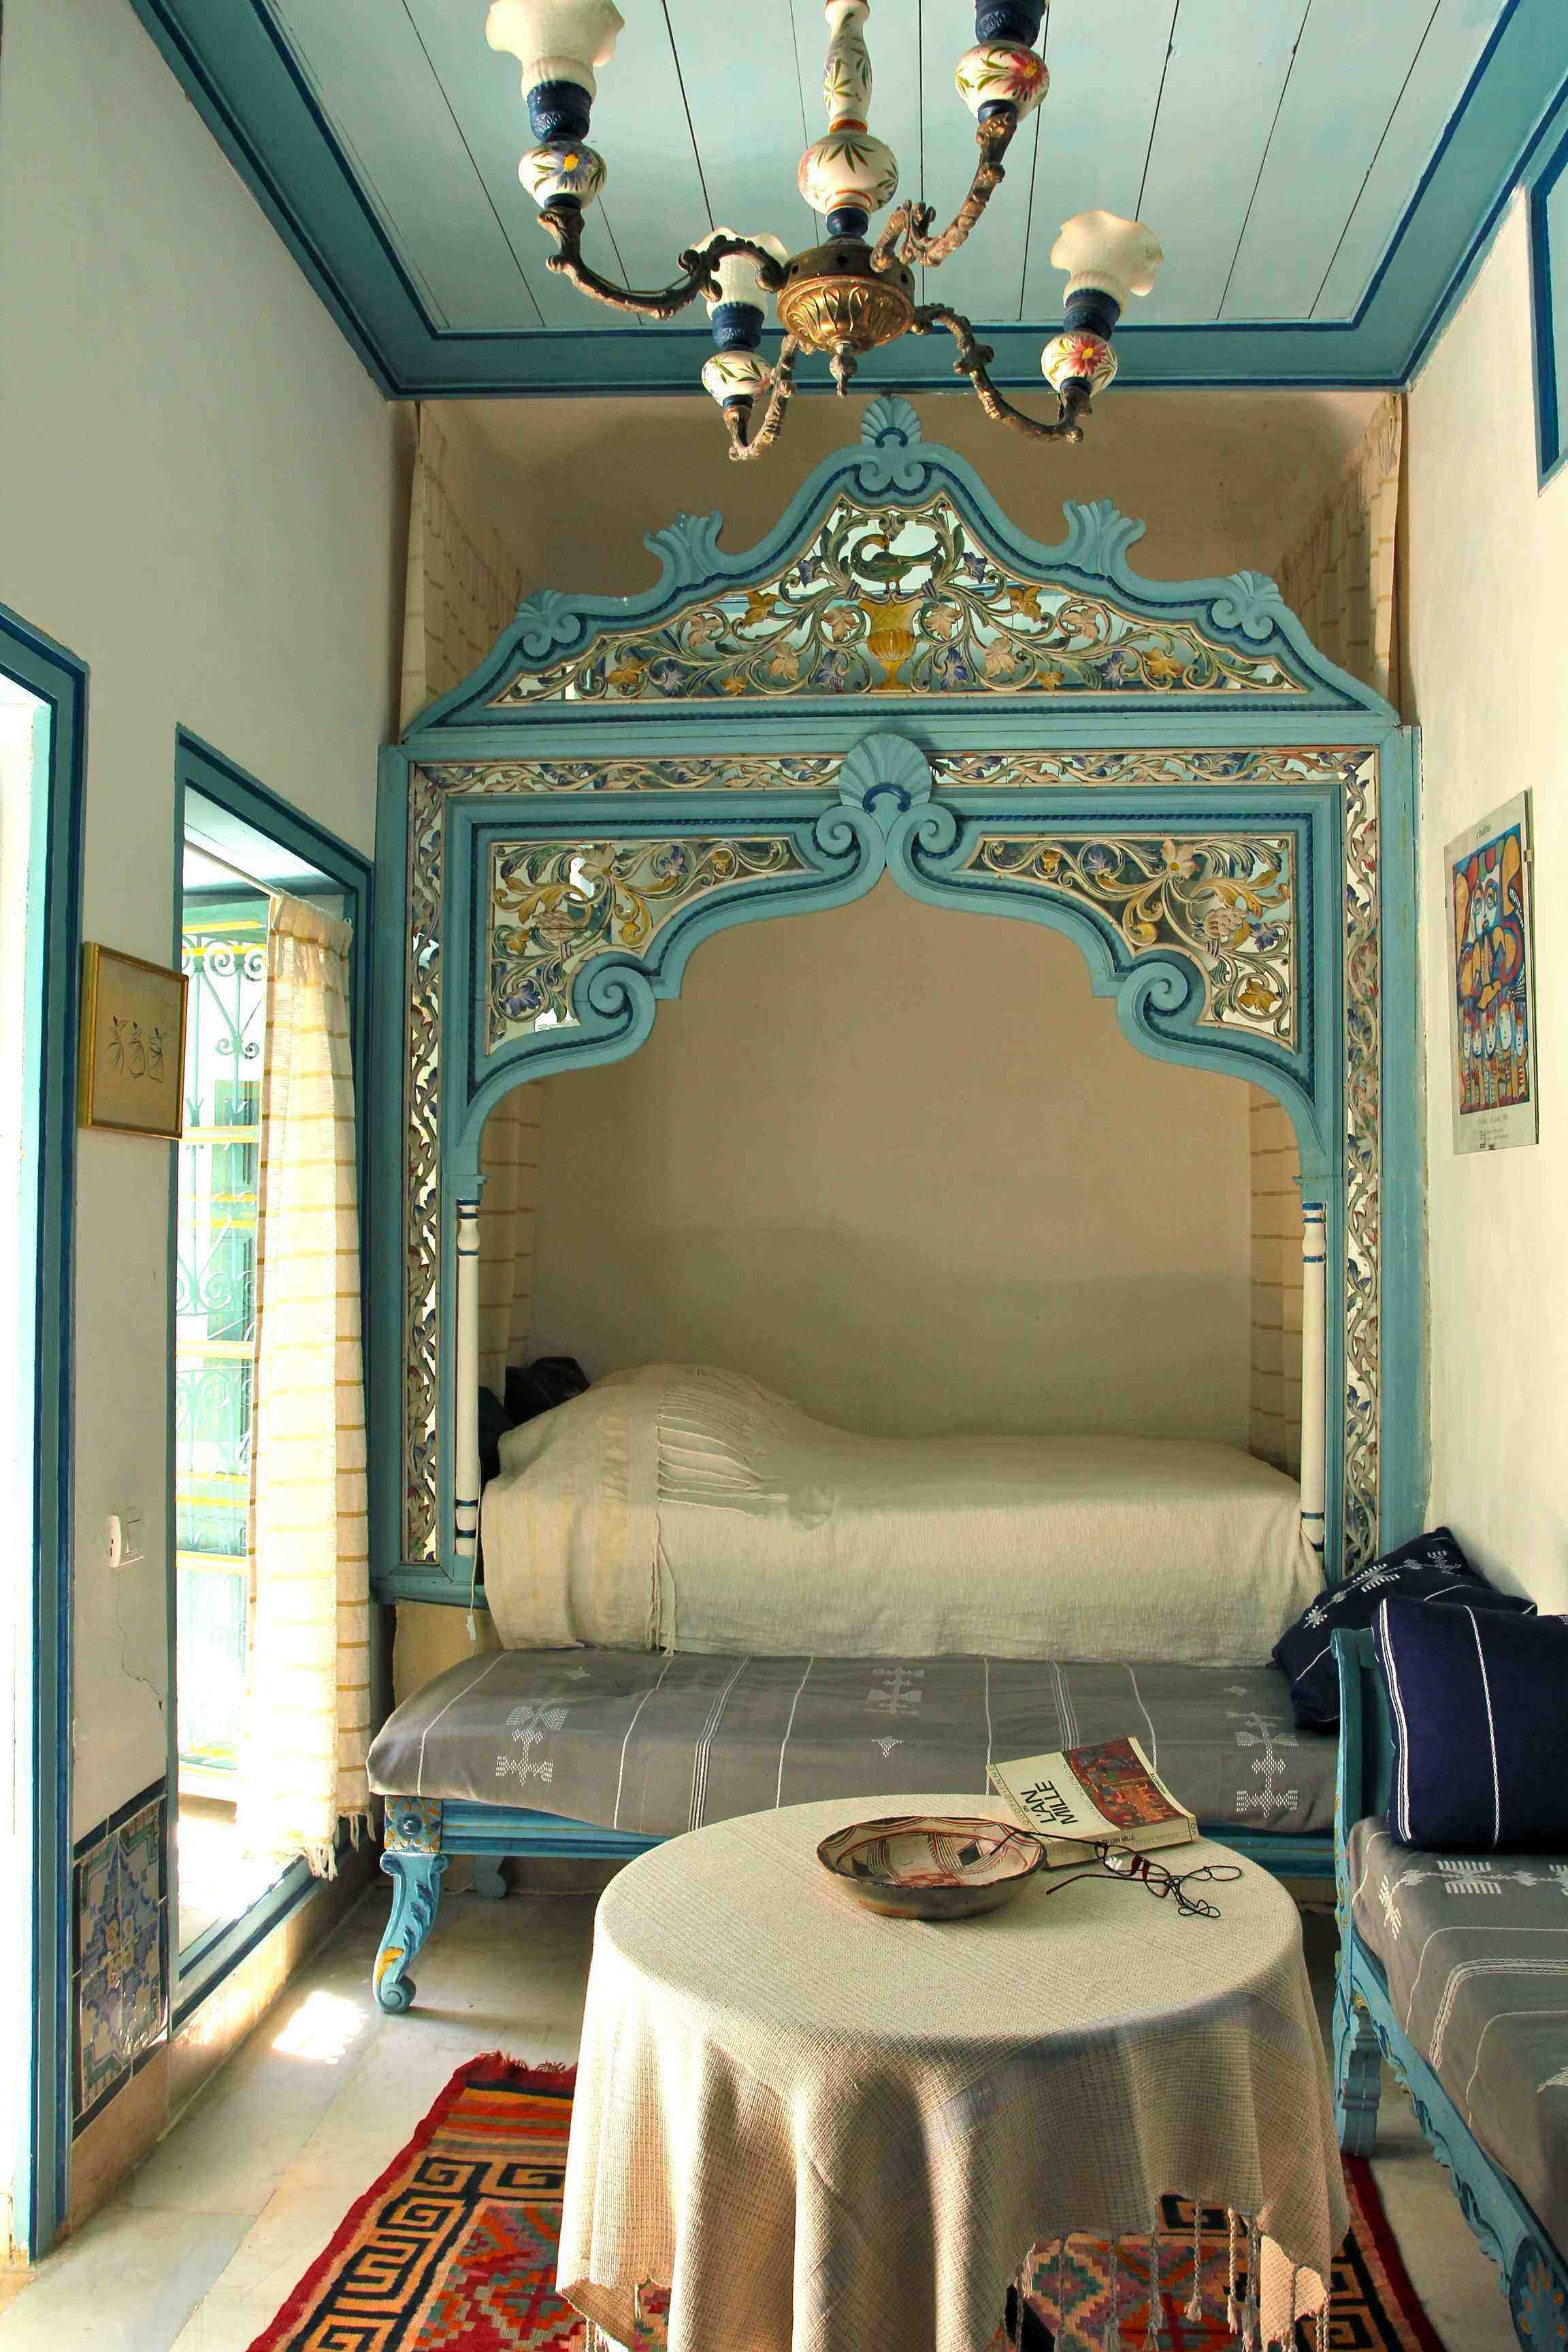 Img 3125 Light Jpg 2304 3456 Moroccan Room Antique Decor Bedroom Home Decor